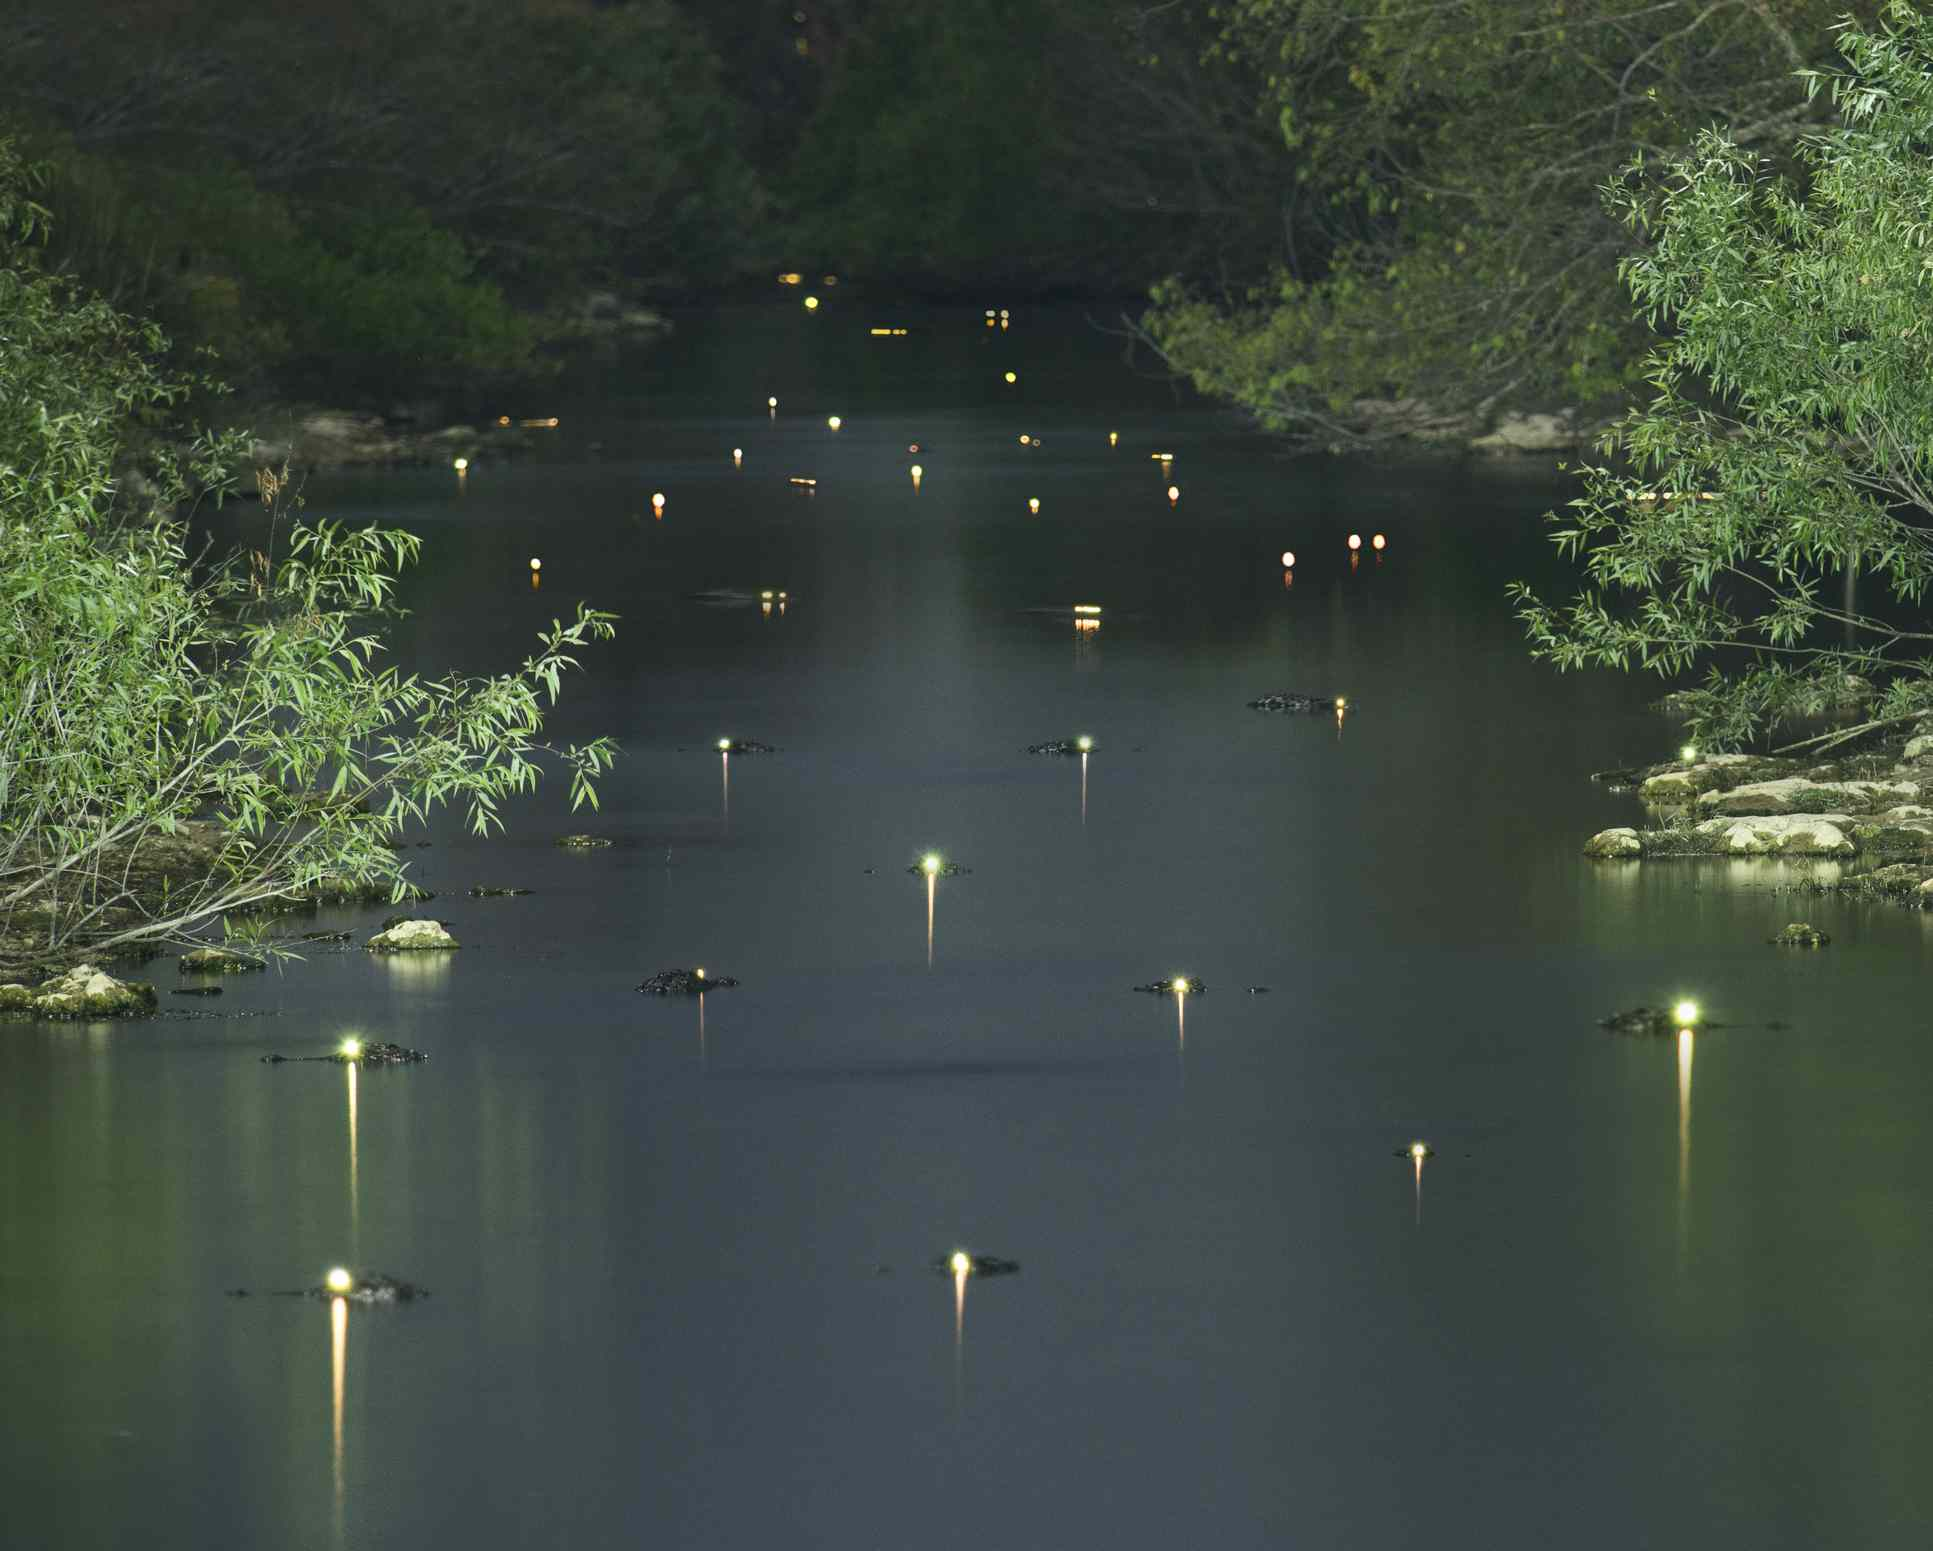 Glowing alligator eyes in a river at night